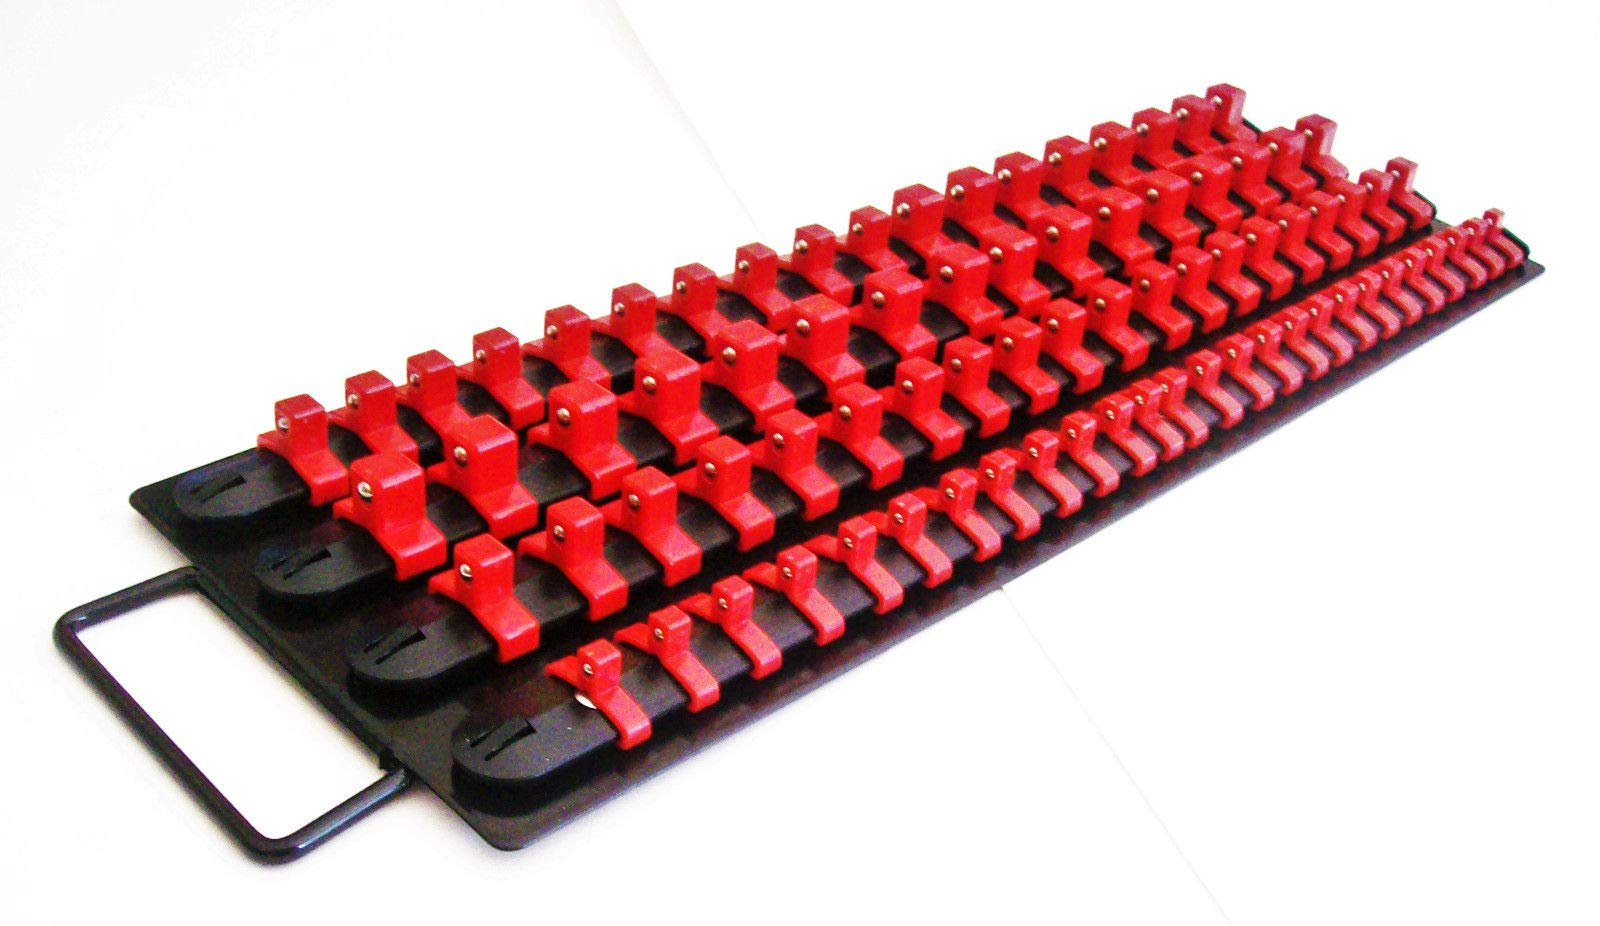 240pc SOCKET STORAGE TRAY RAIL RACK HOLDER SET 1/4 3/8 1/2 RED BLACK BLUE 17-1/2'' LONG 3 TOTAL TRAYS 6'' WIDE by shueysales (Image #5)